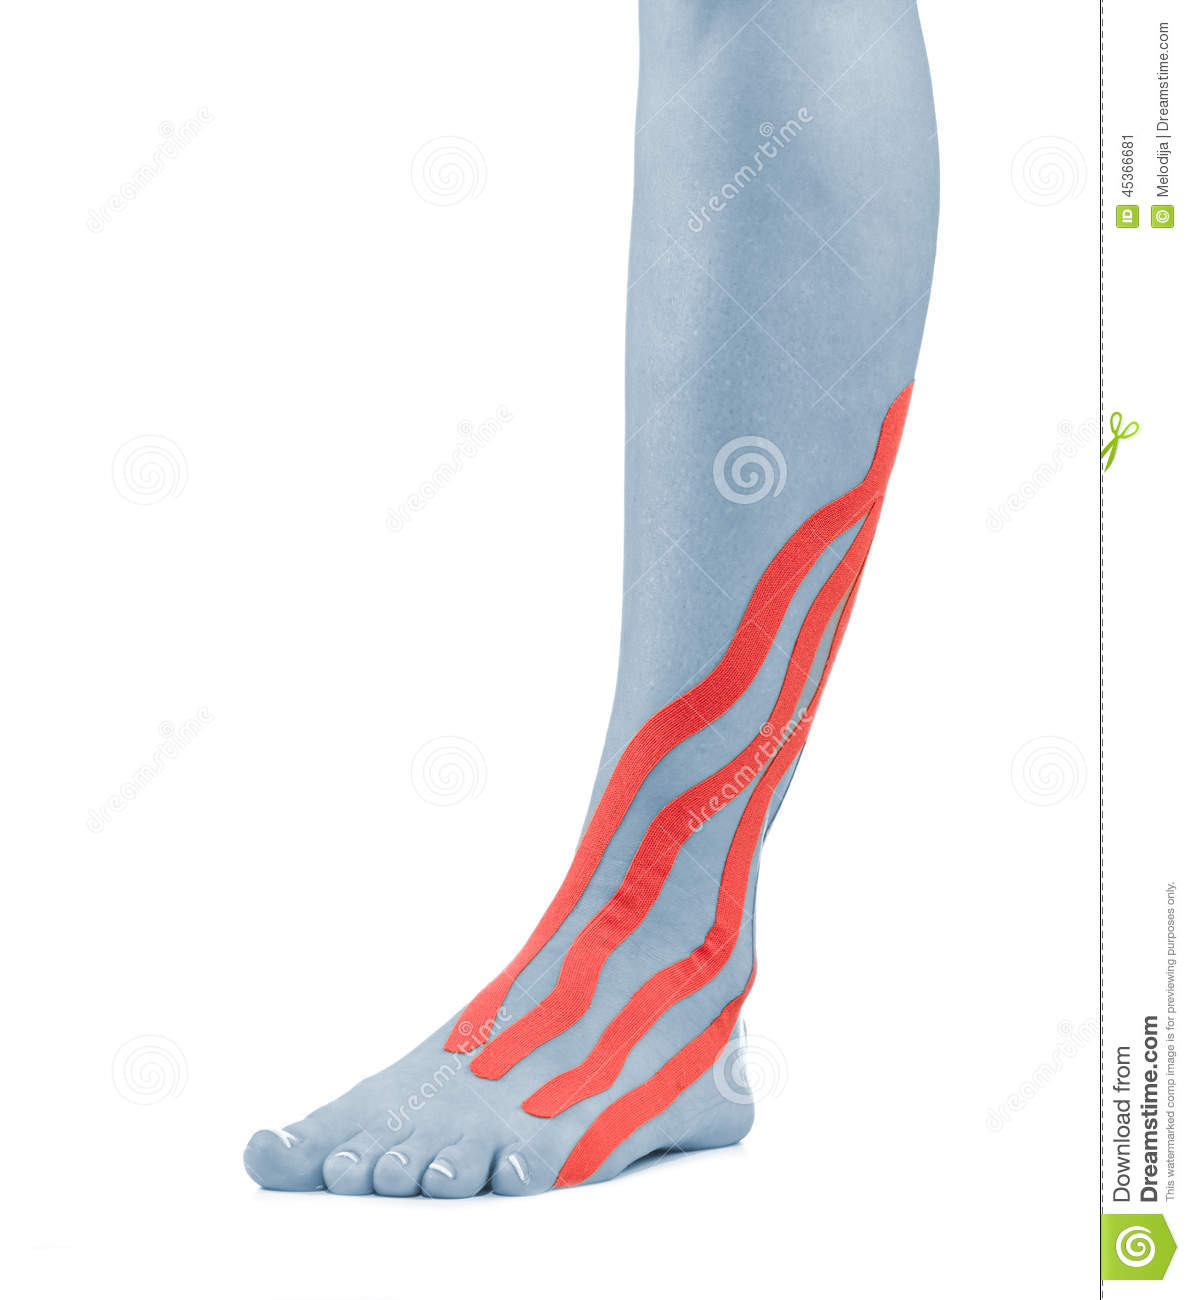 Injured Ankle Stock Photo - Image: 45366681